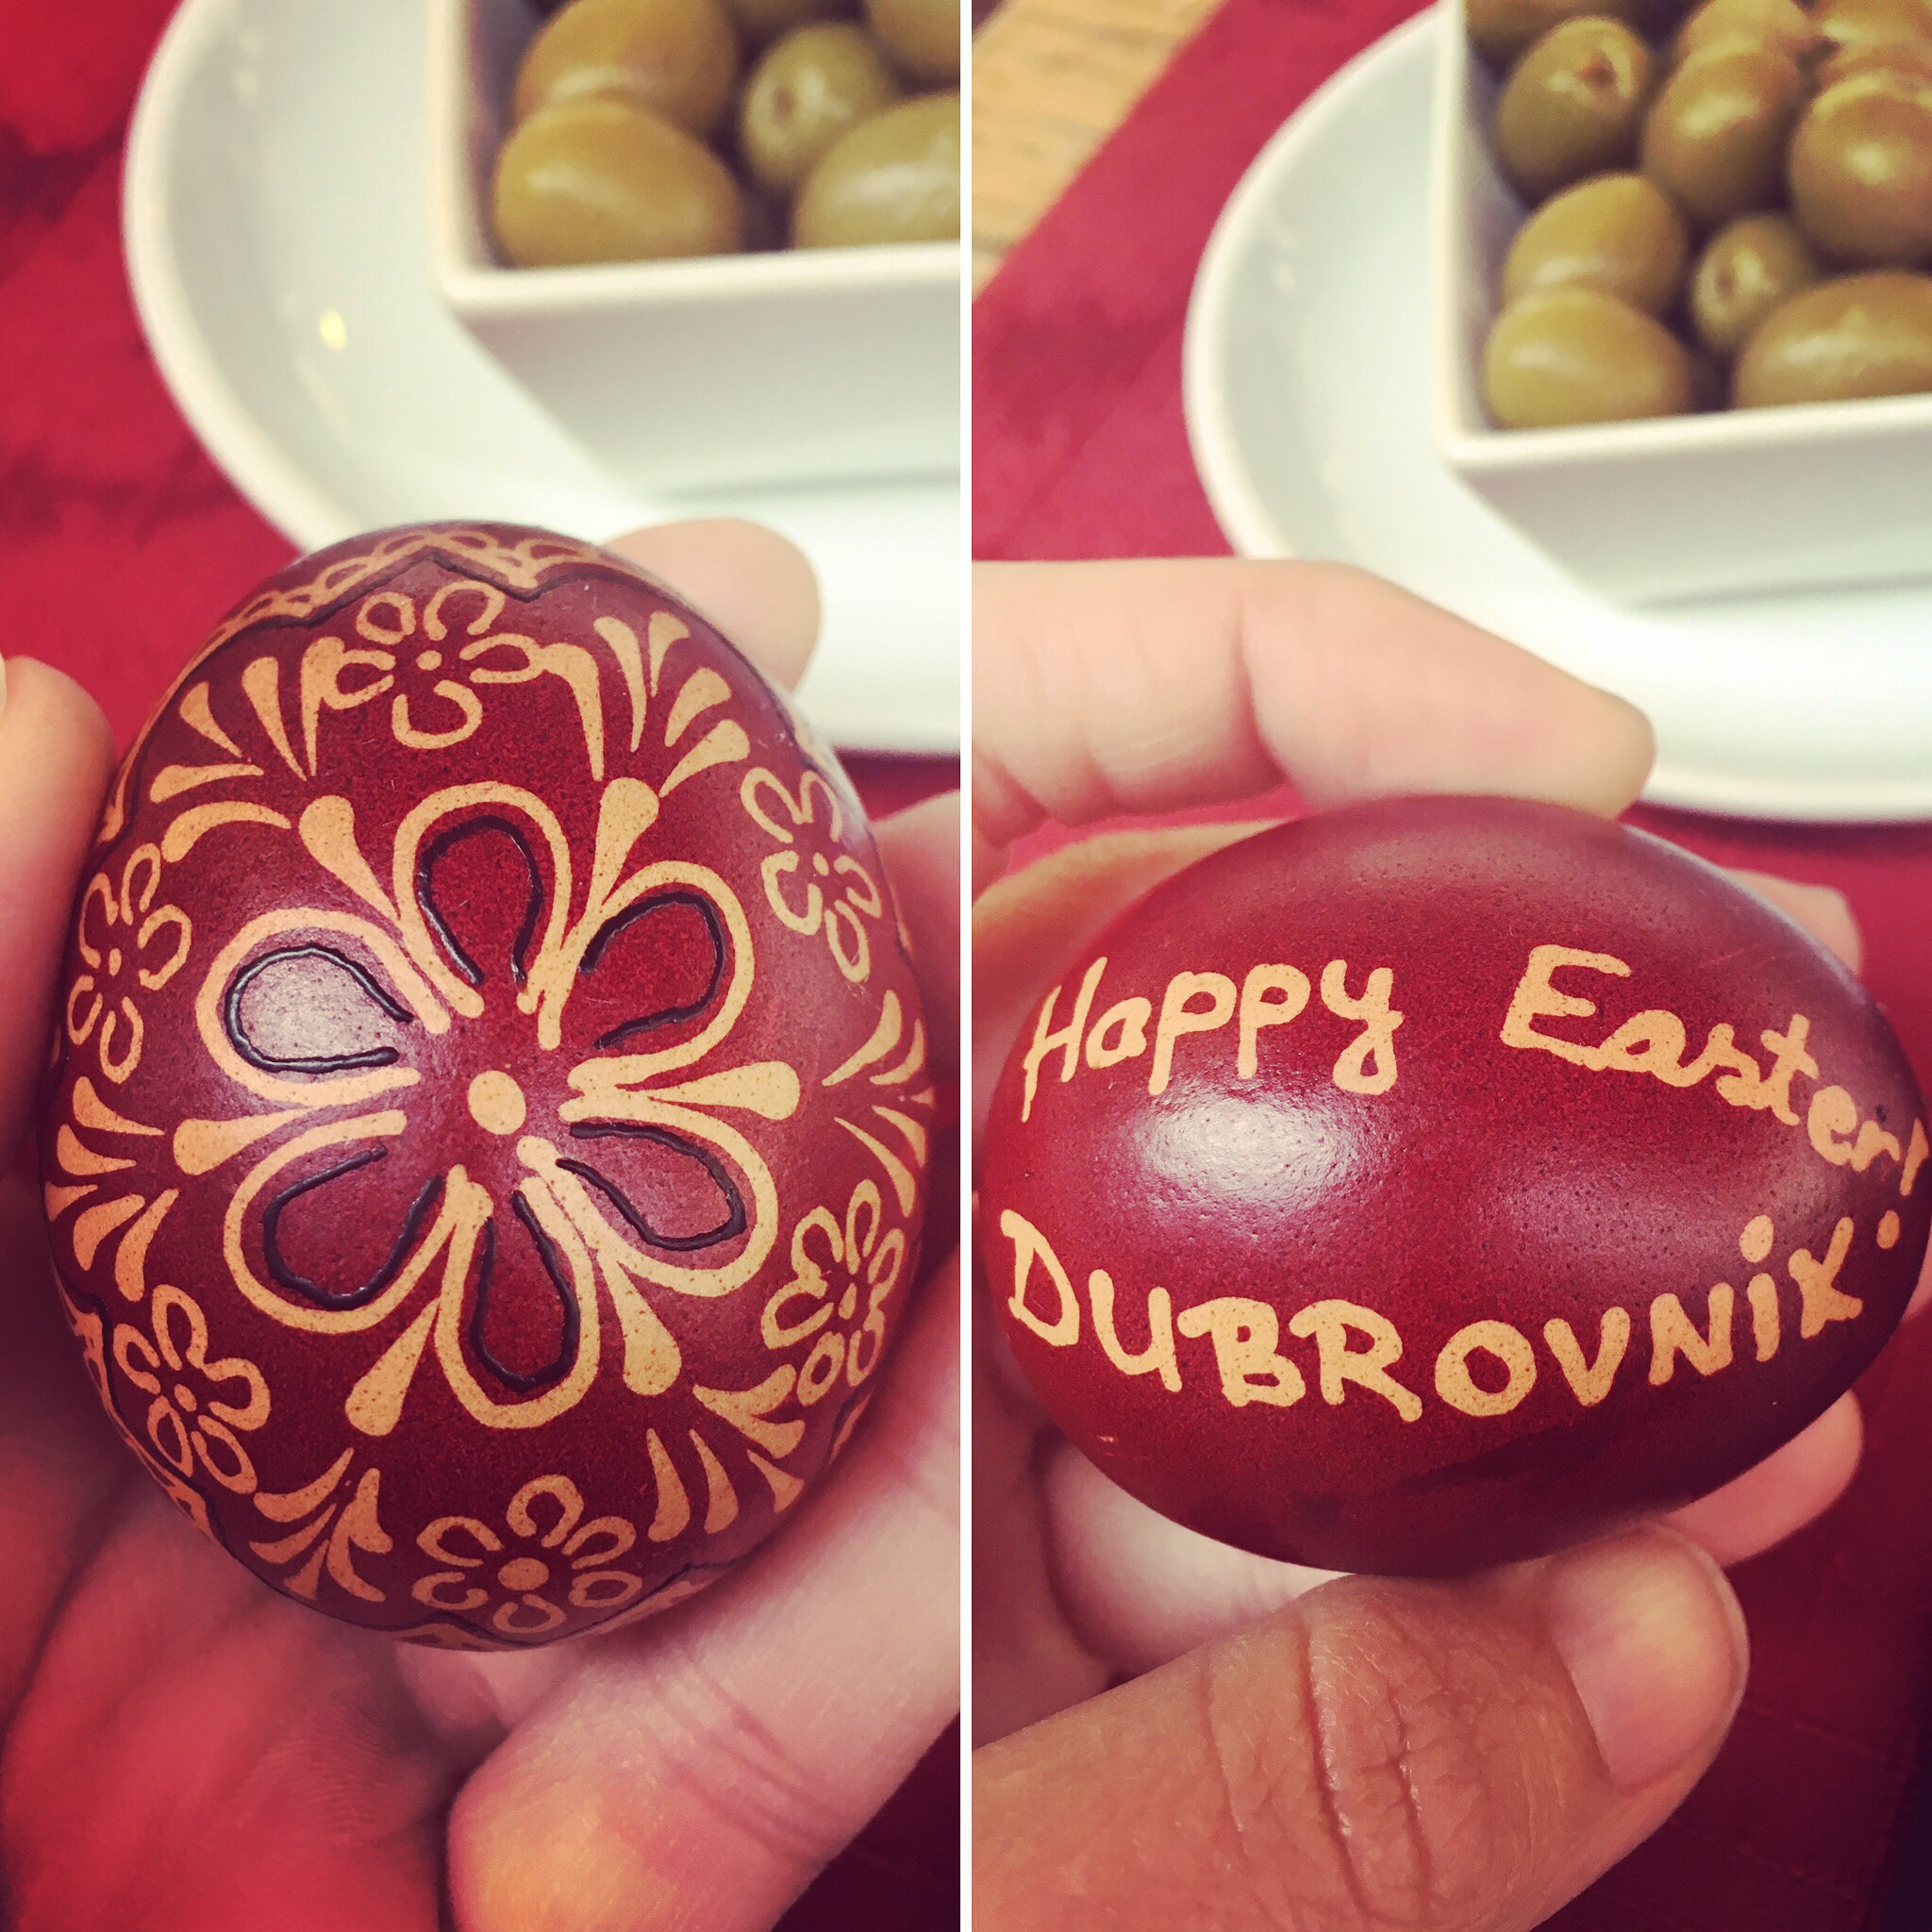 I was gifted a traditional painted egg!